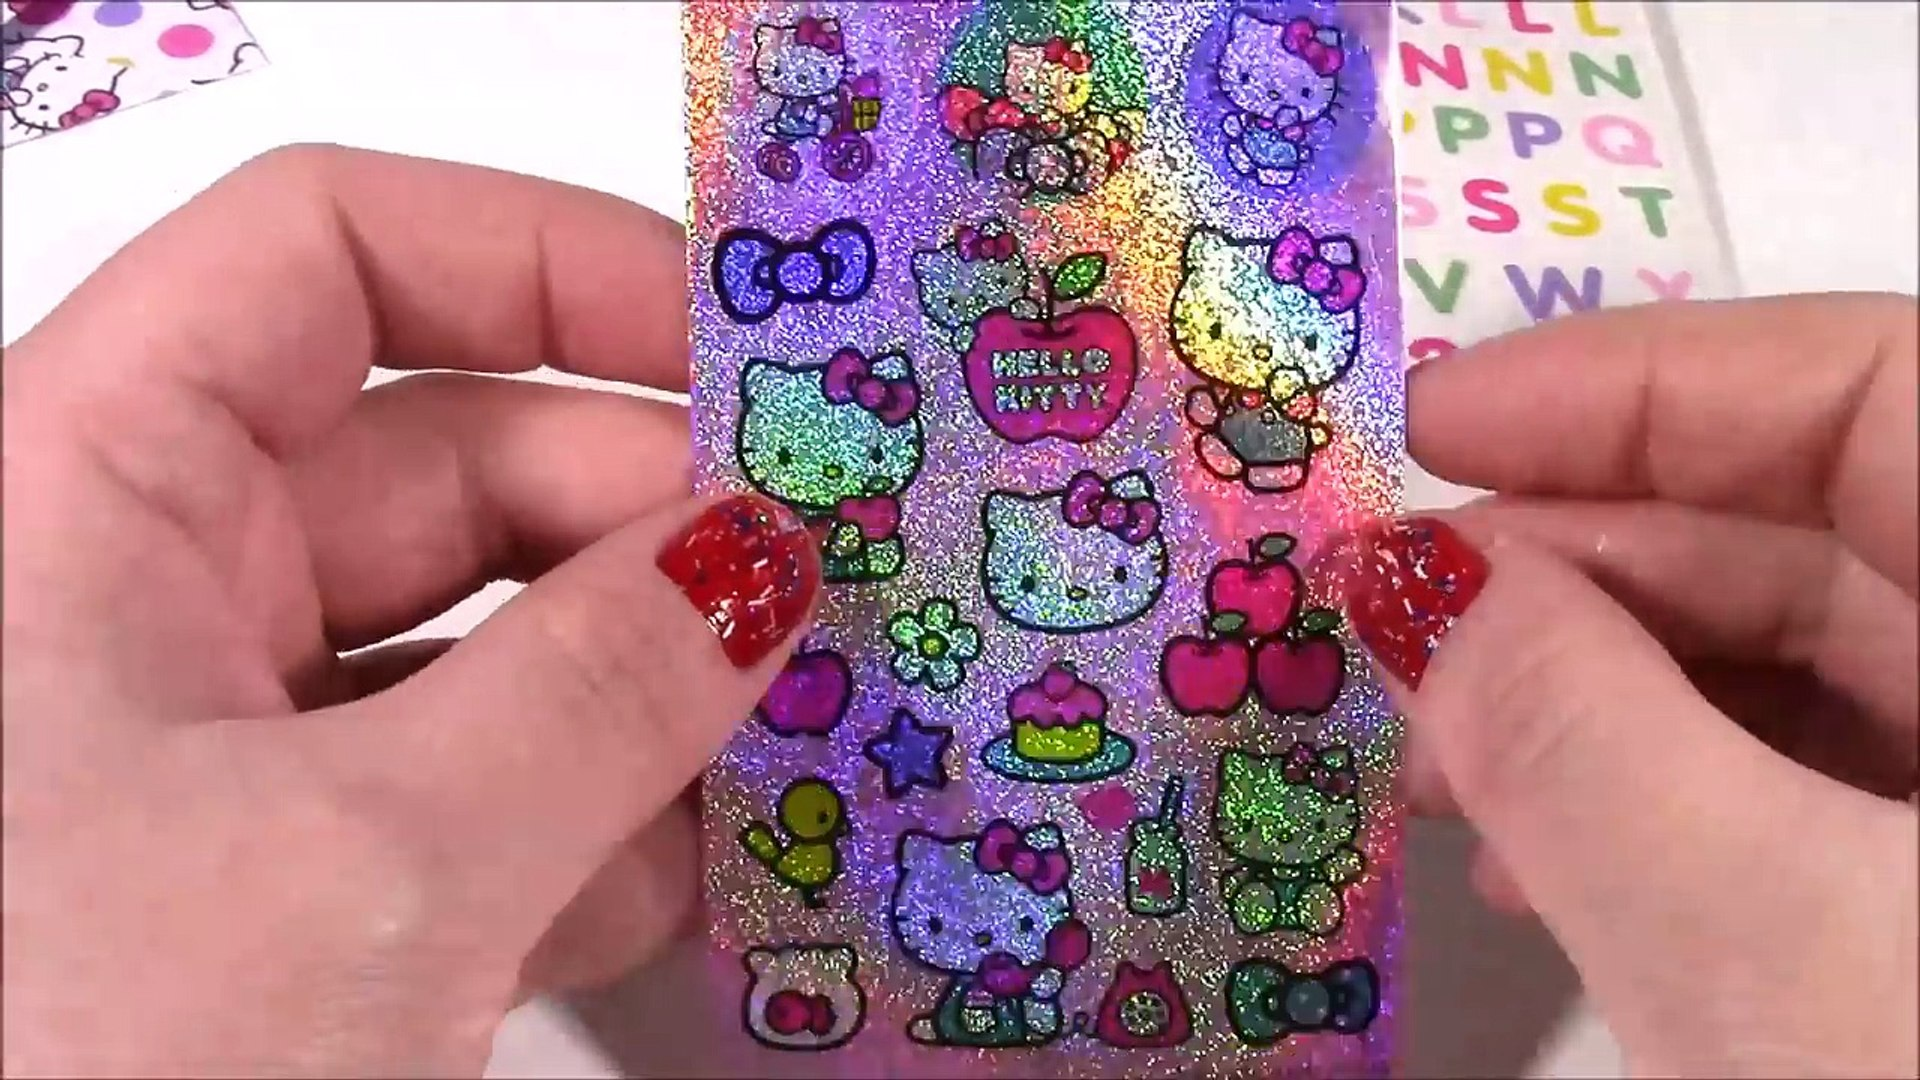 55776341b Hello Kitty All-in-One Scrapbooking Kit! Design Your Own Book with Stickers  & More! Lip Balm SET! – Видео Dailymotion